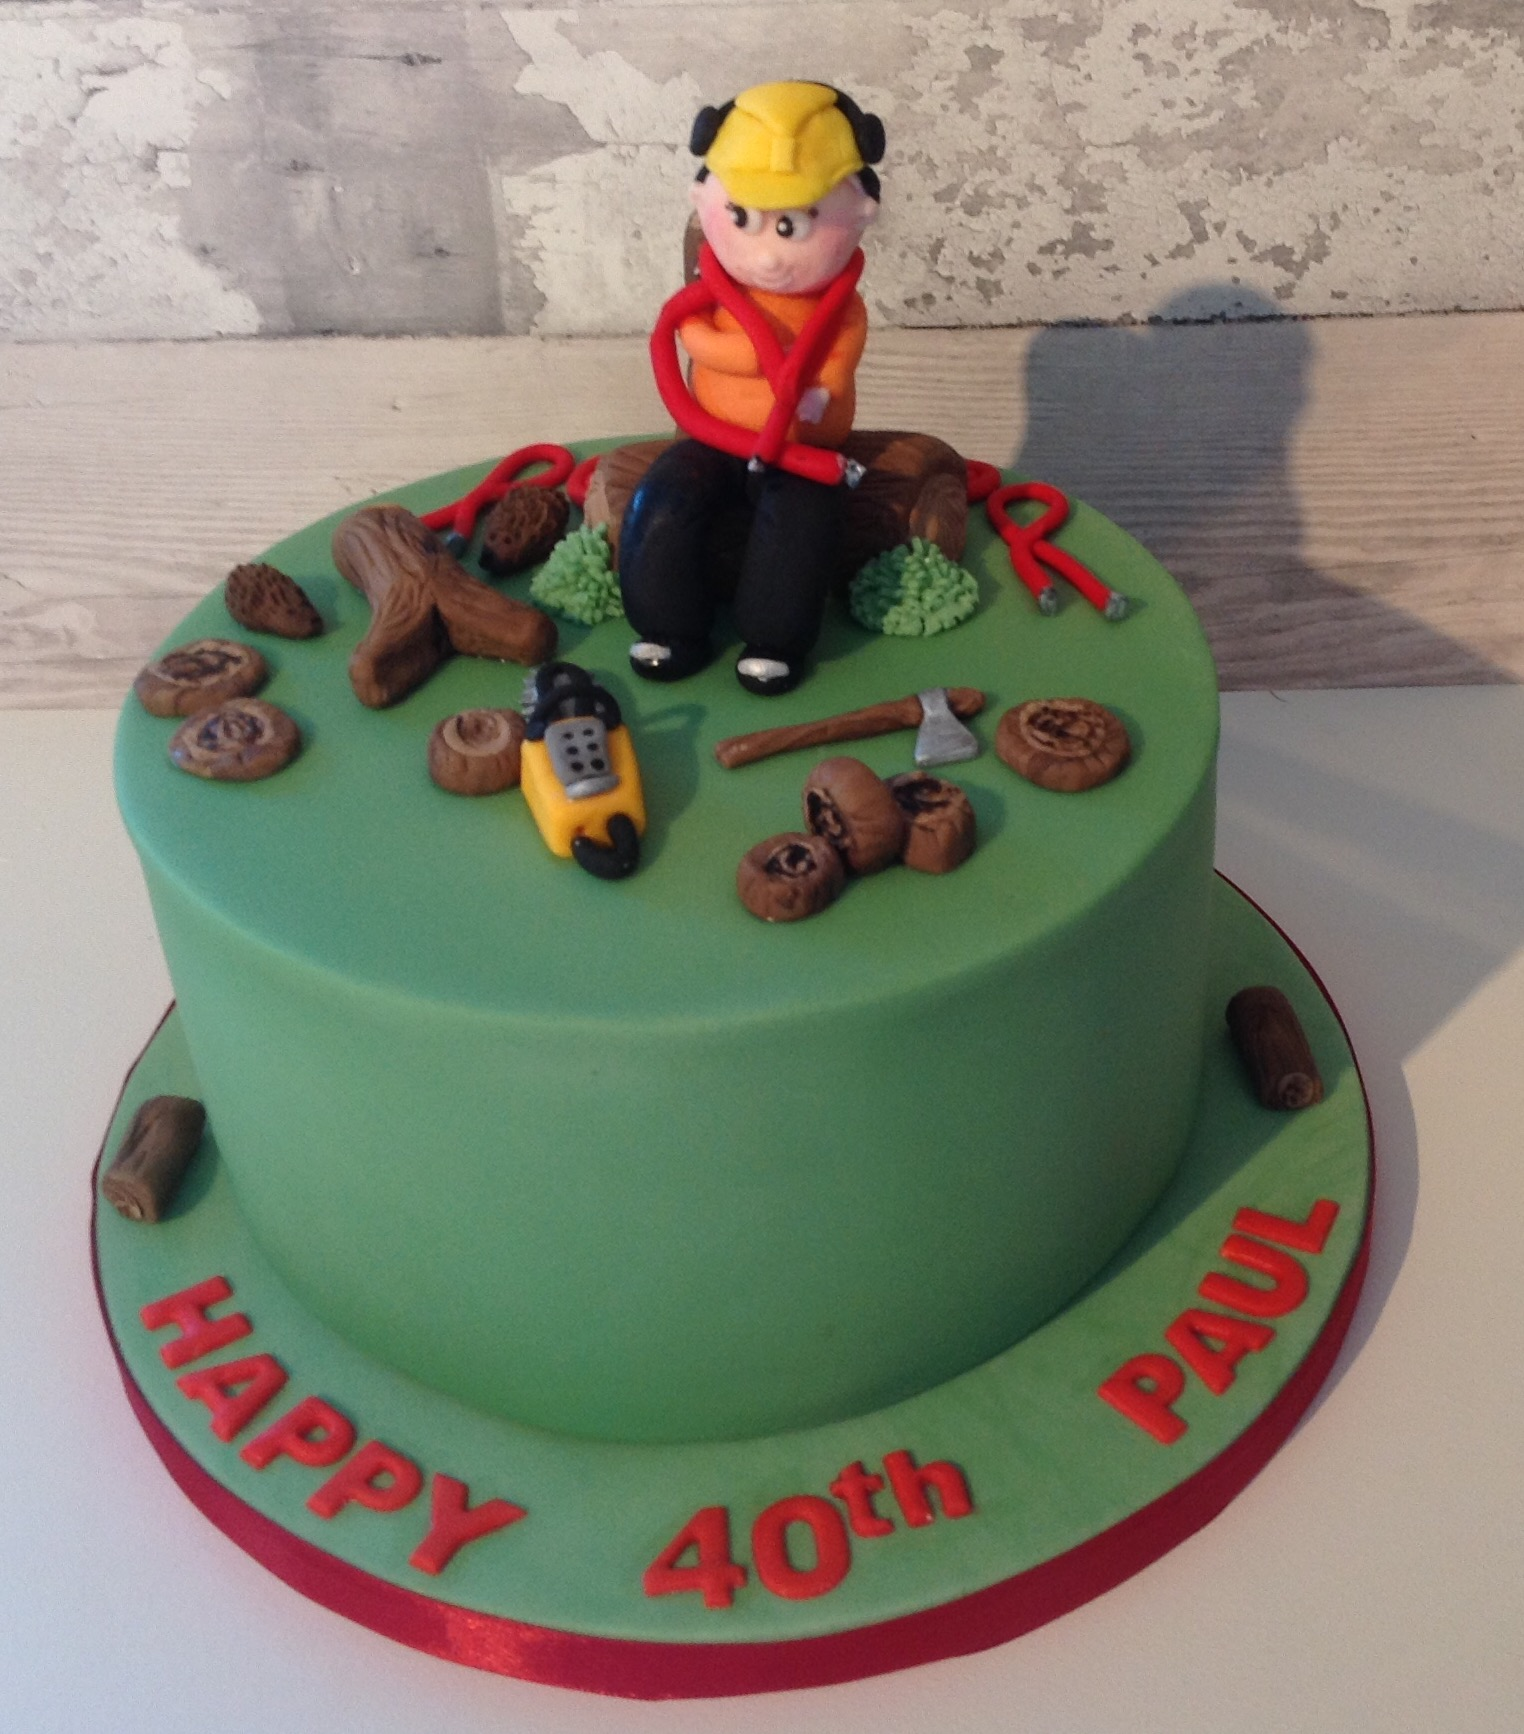 The Tree Surgeon's 40th